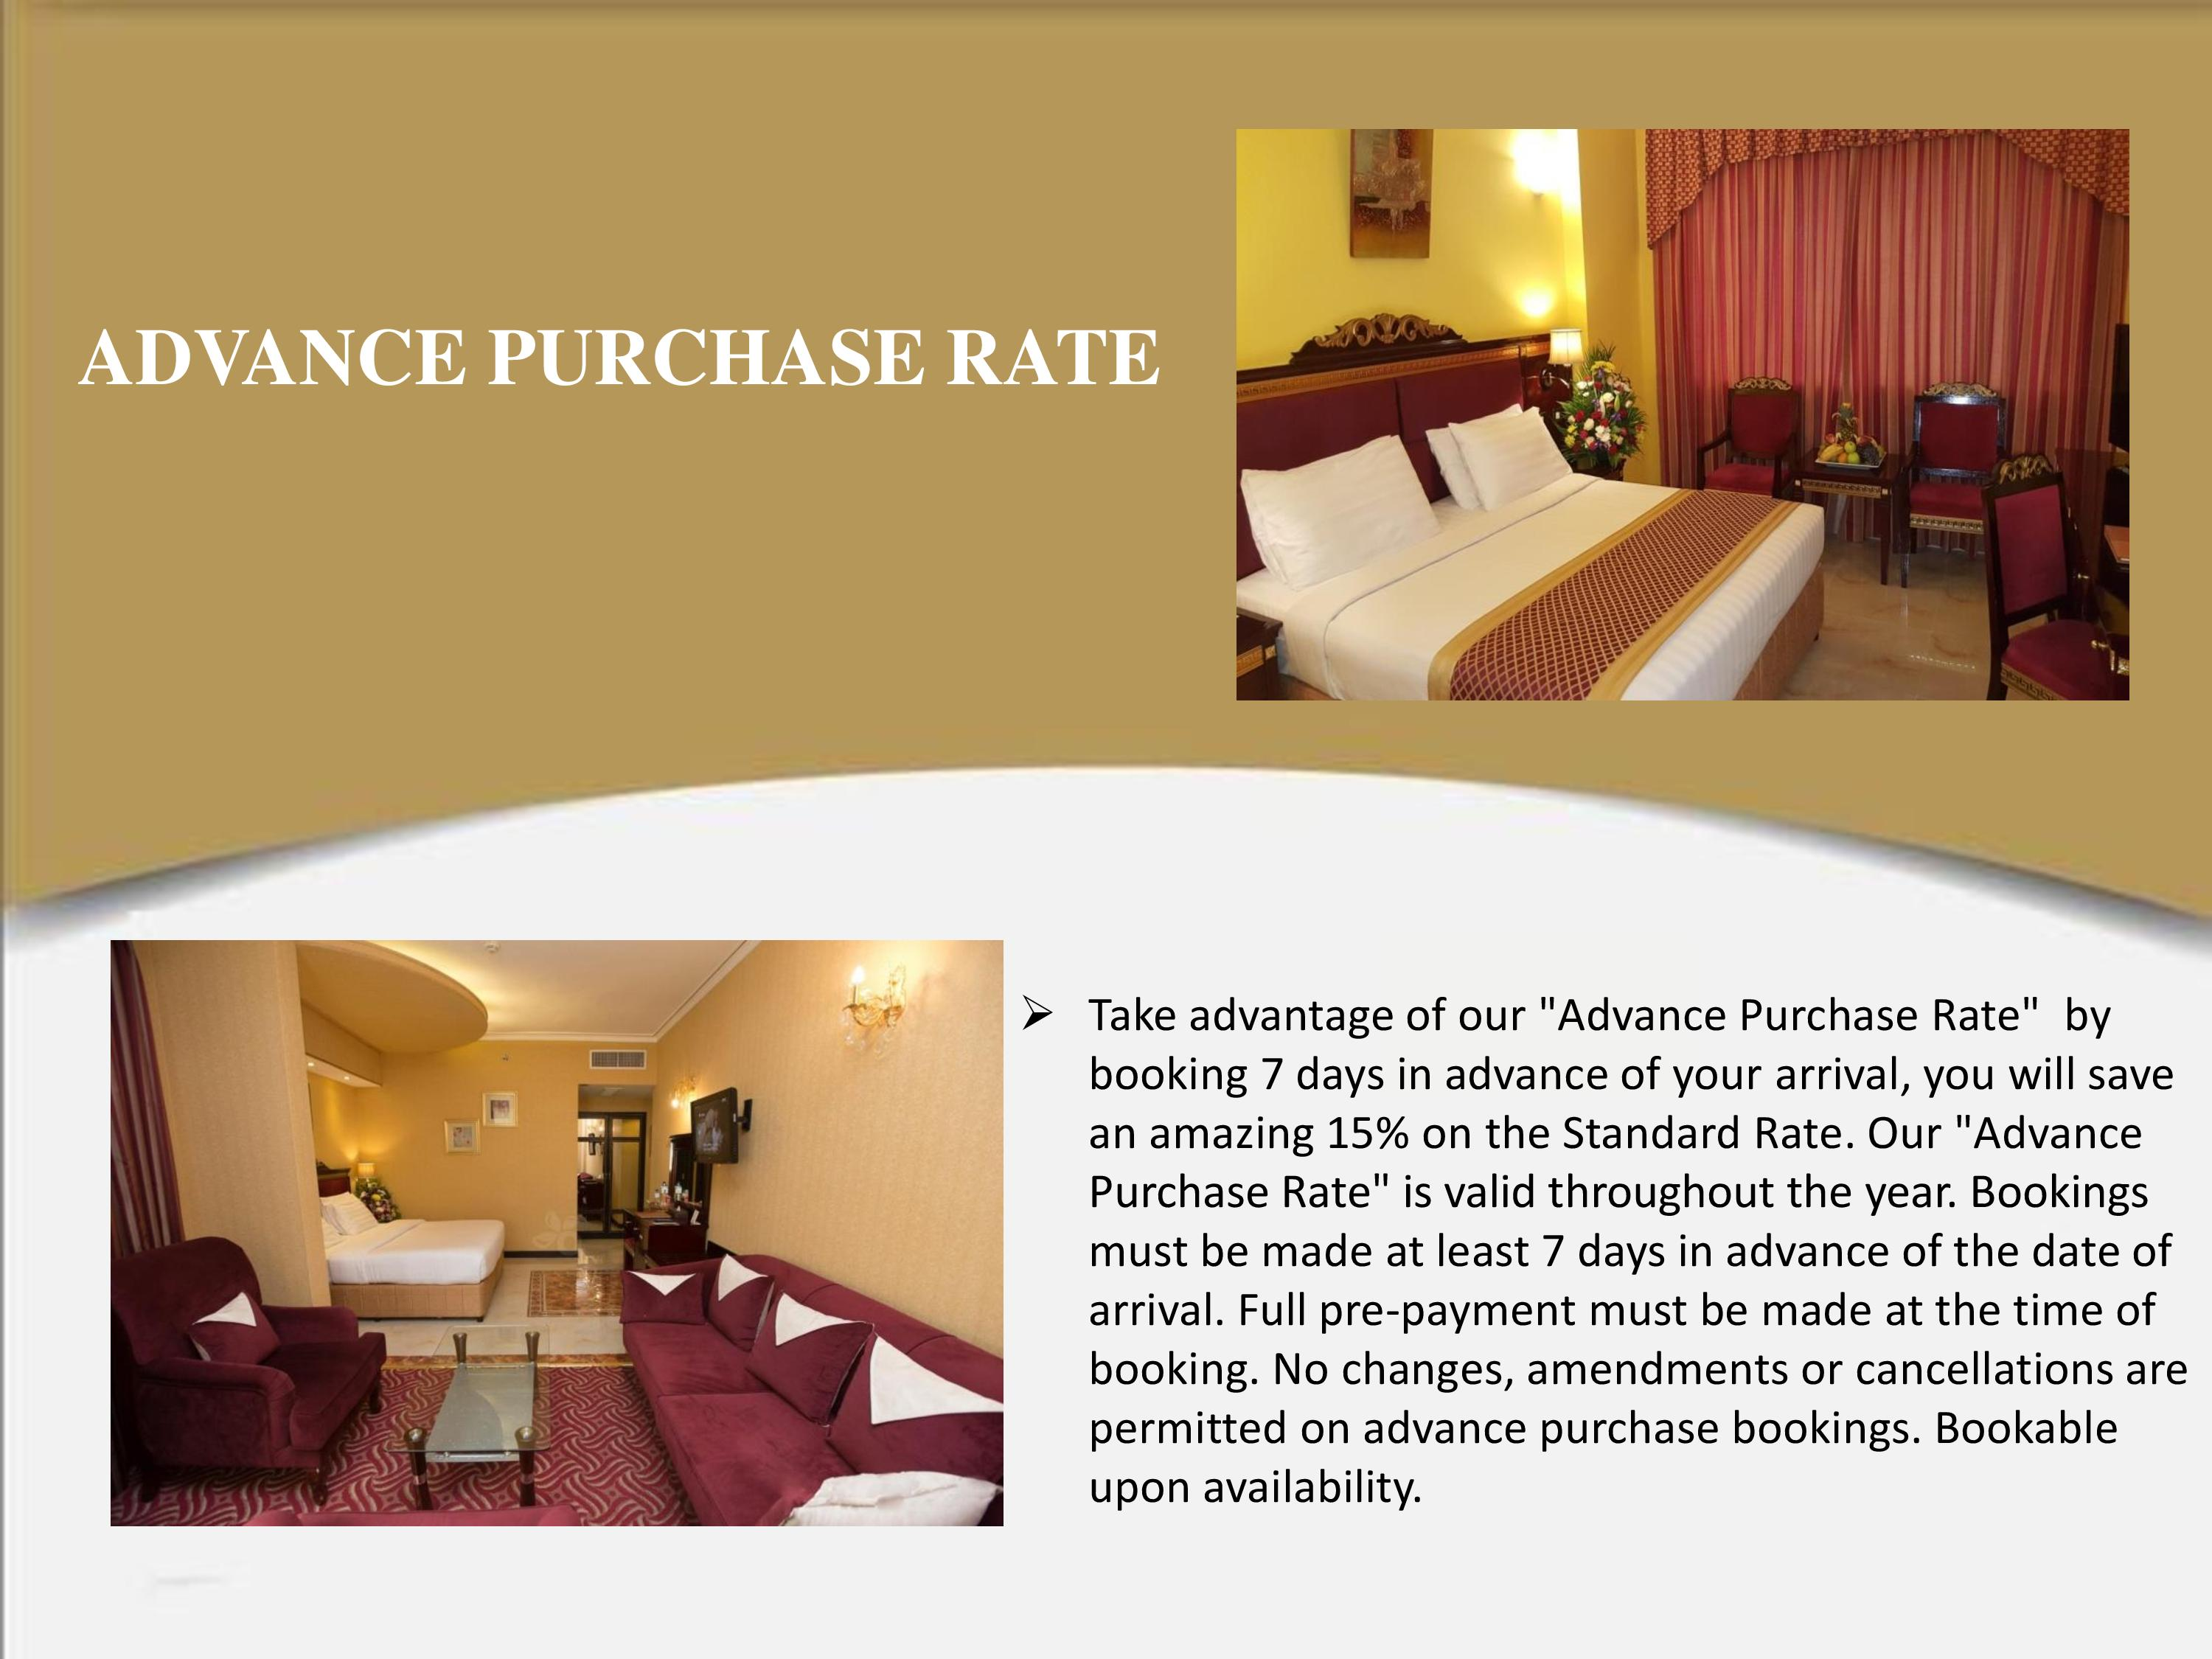 Advance Purchase Rate